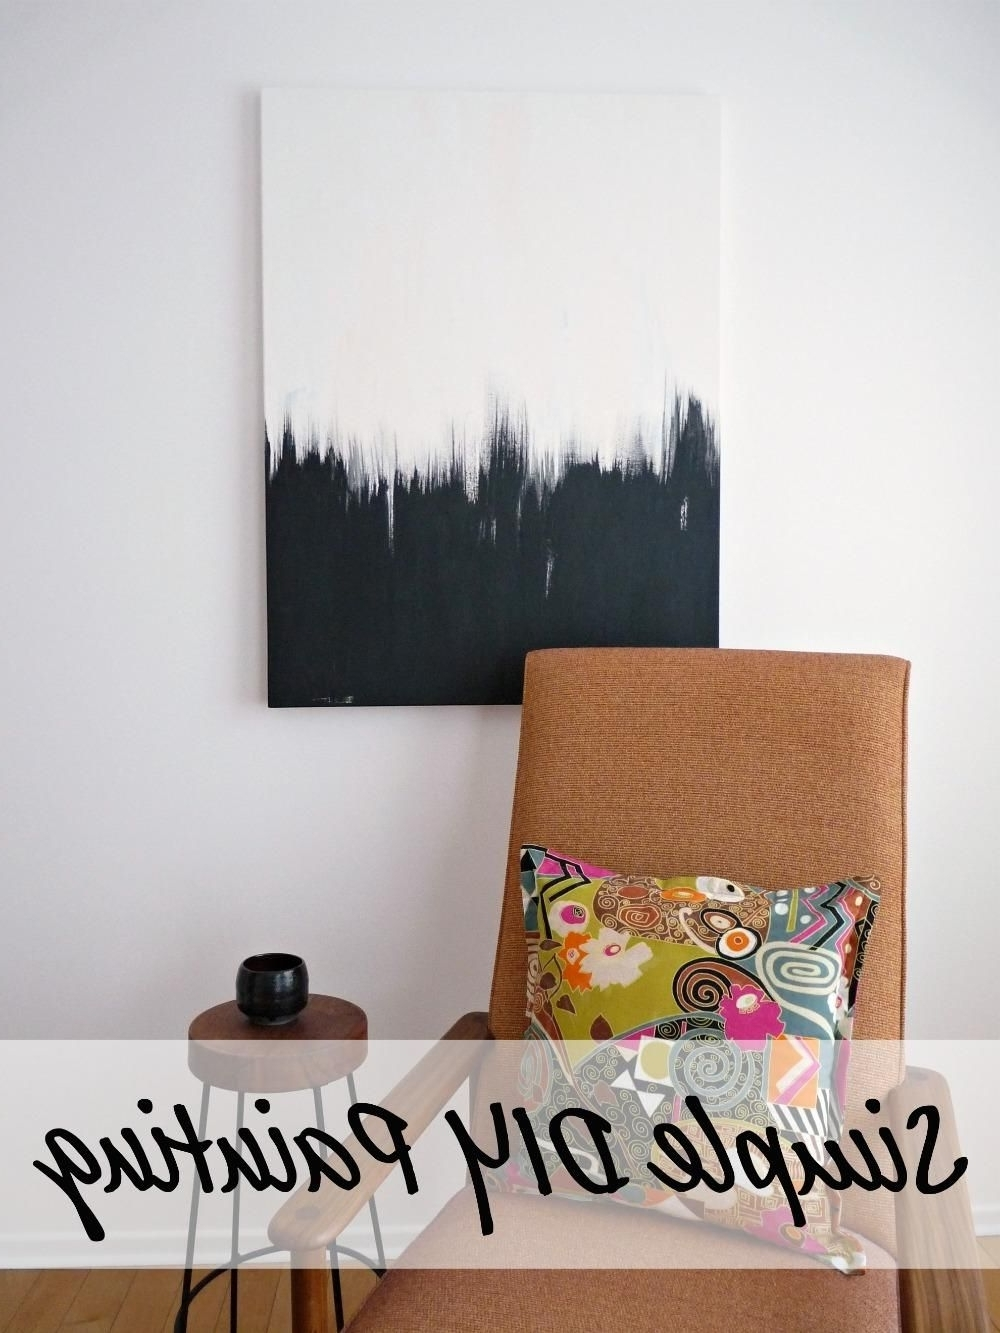 Most Recent Wall Art Diy In Diy Wall Art: Simple But Striking Diy Black And White Wall Art (View 8 of 15)